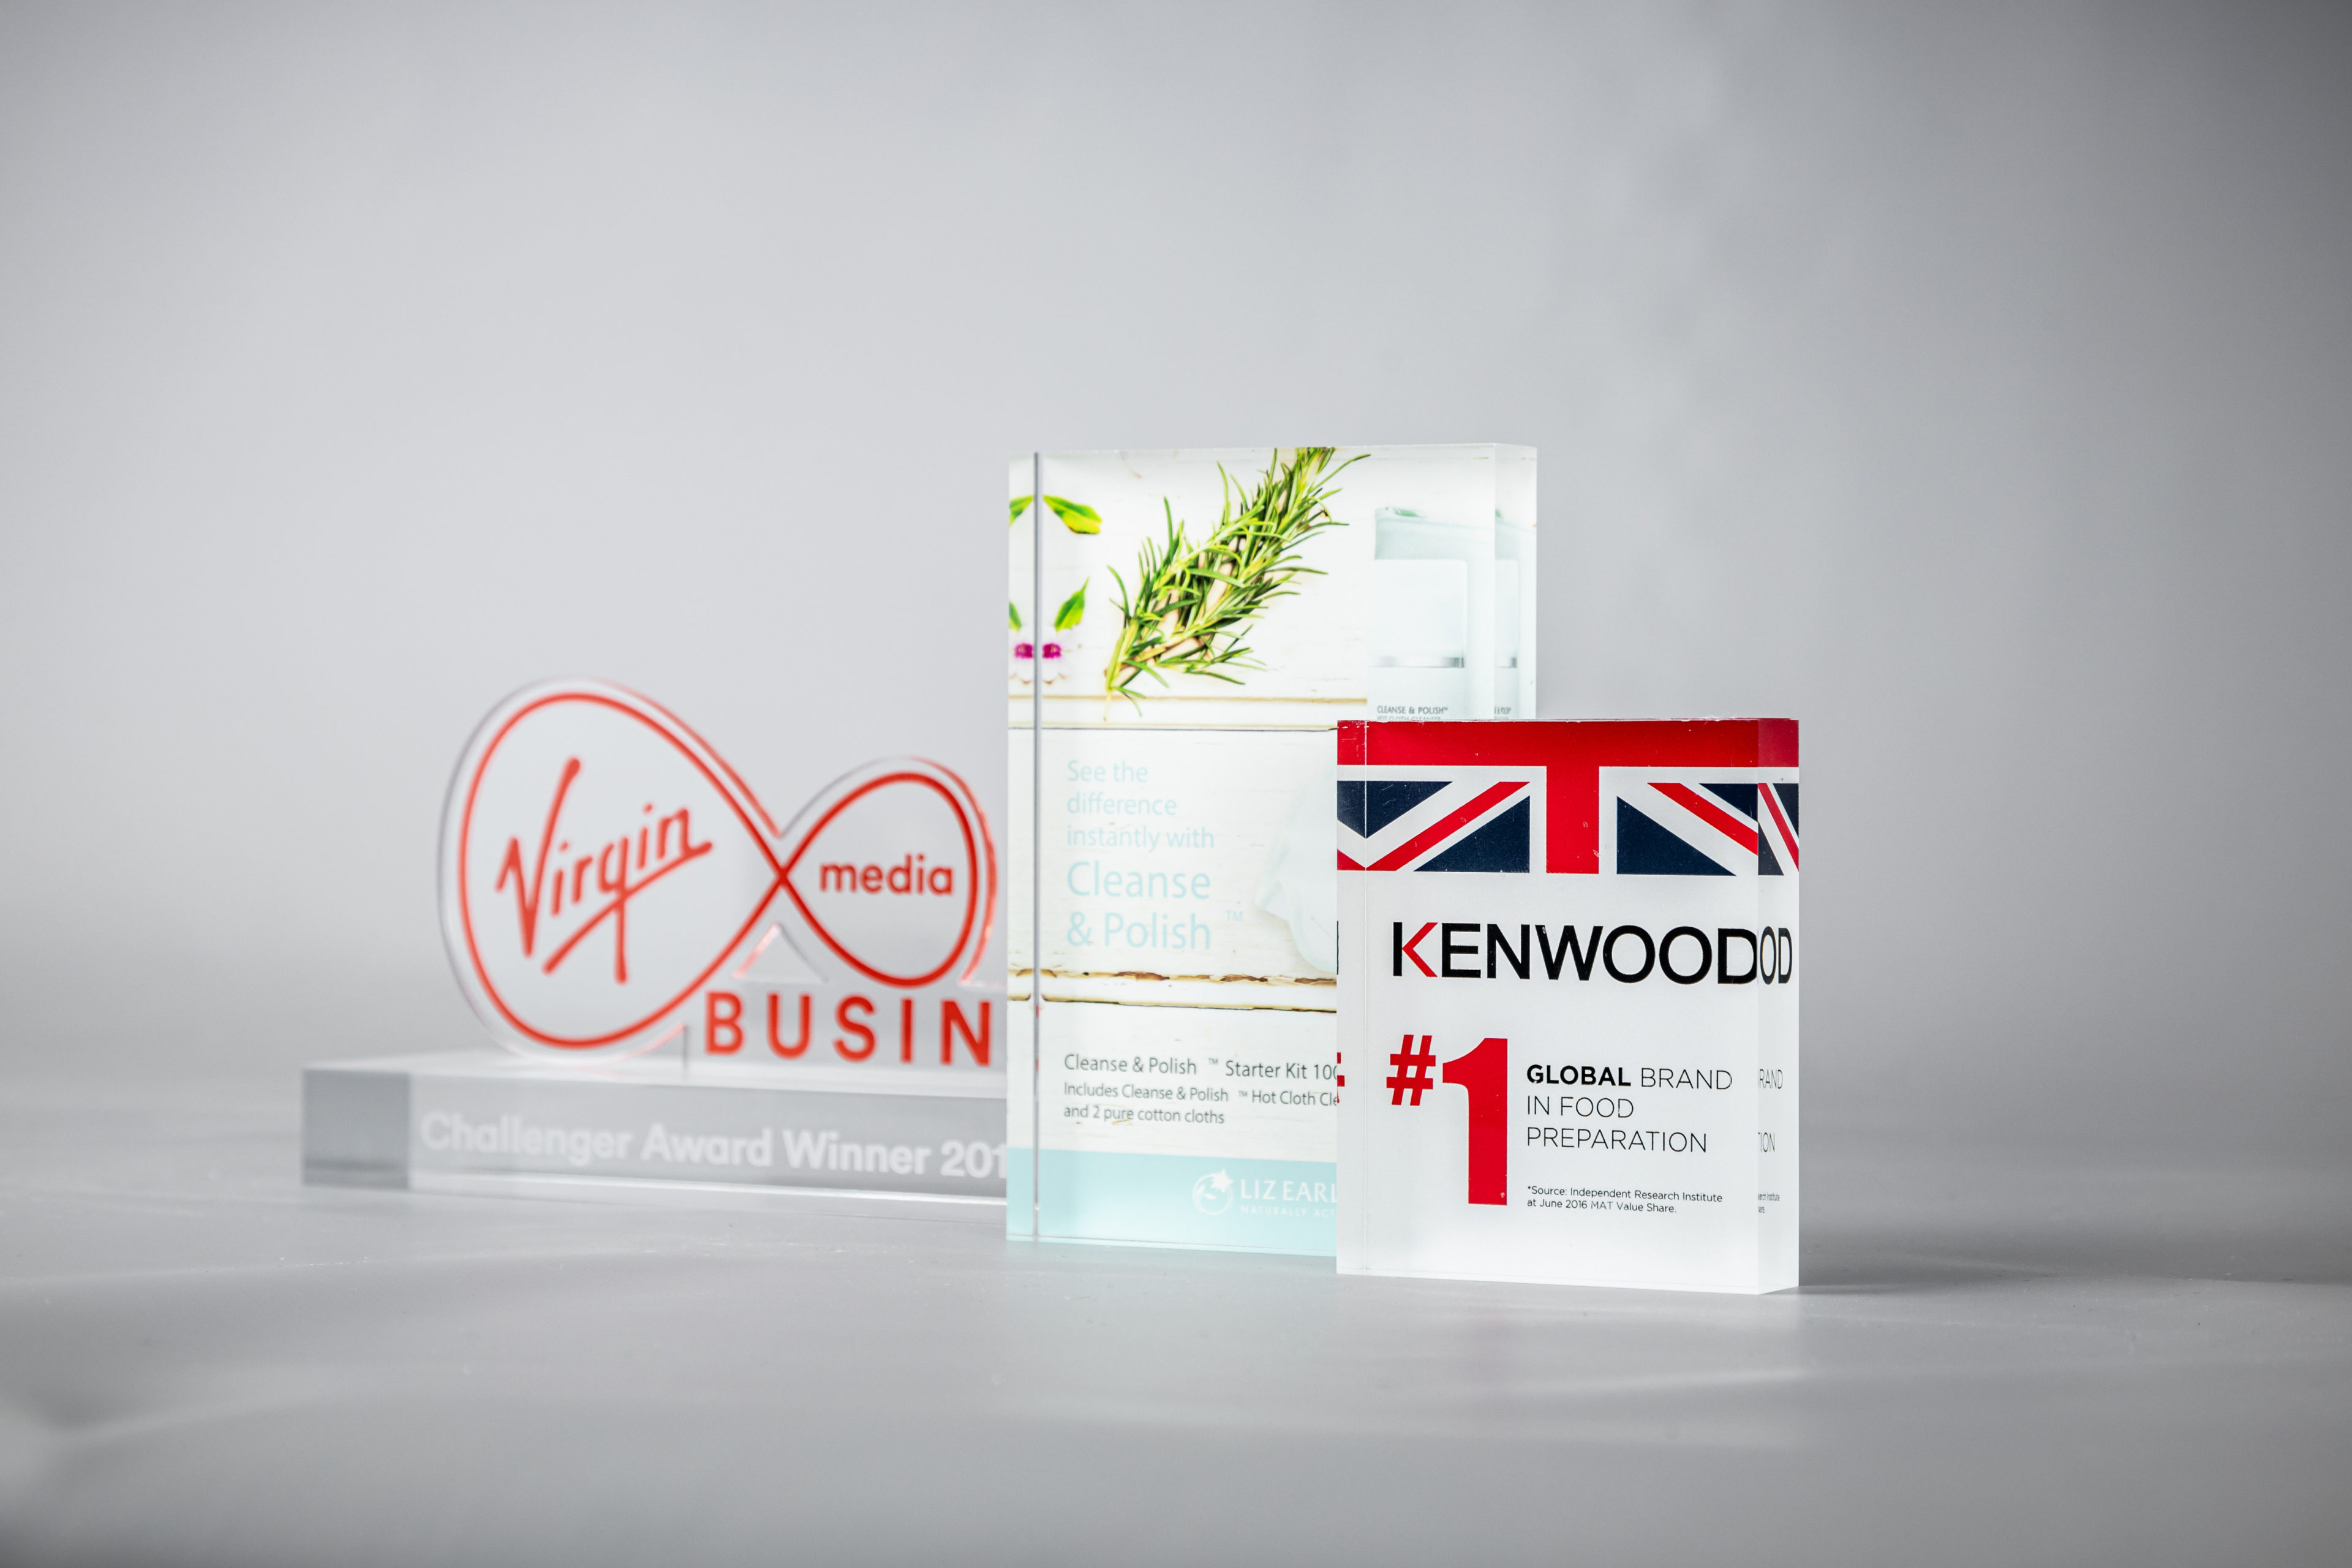 Virgin Media business awards trophies